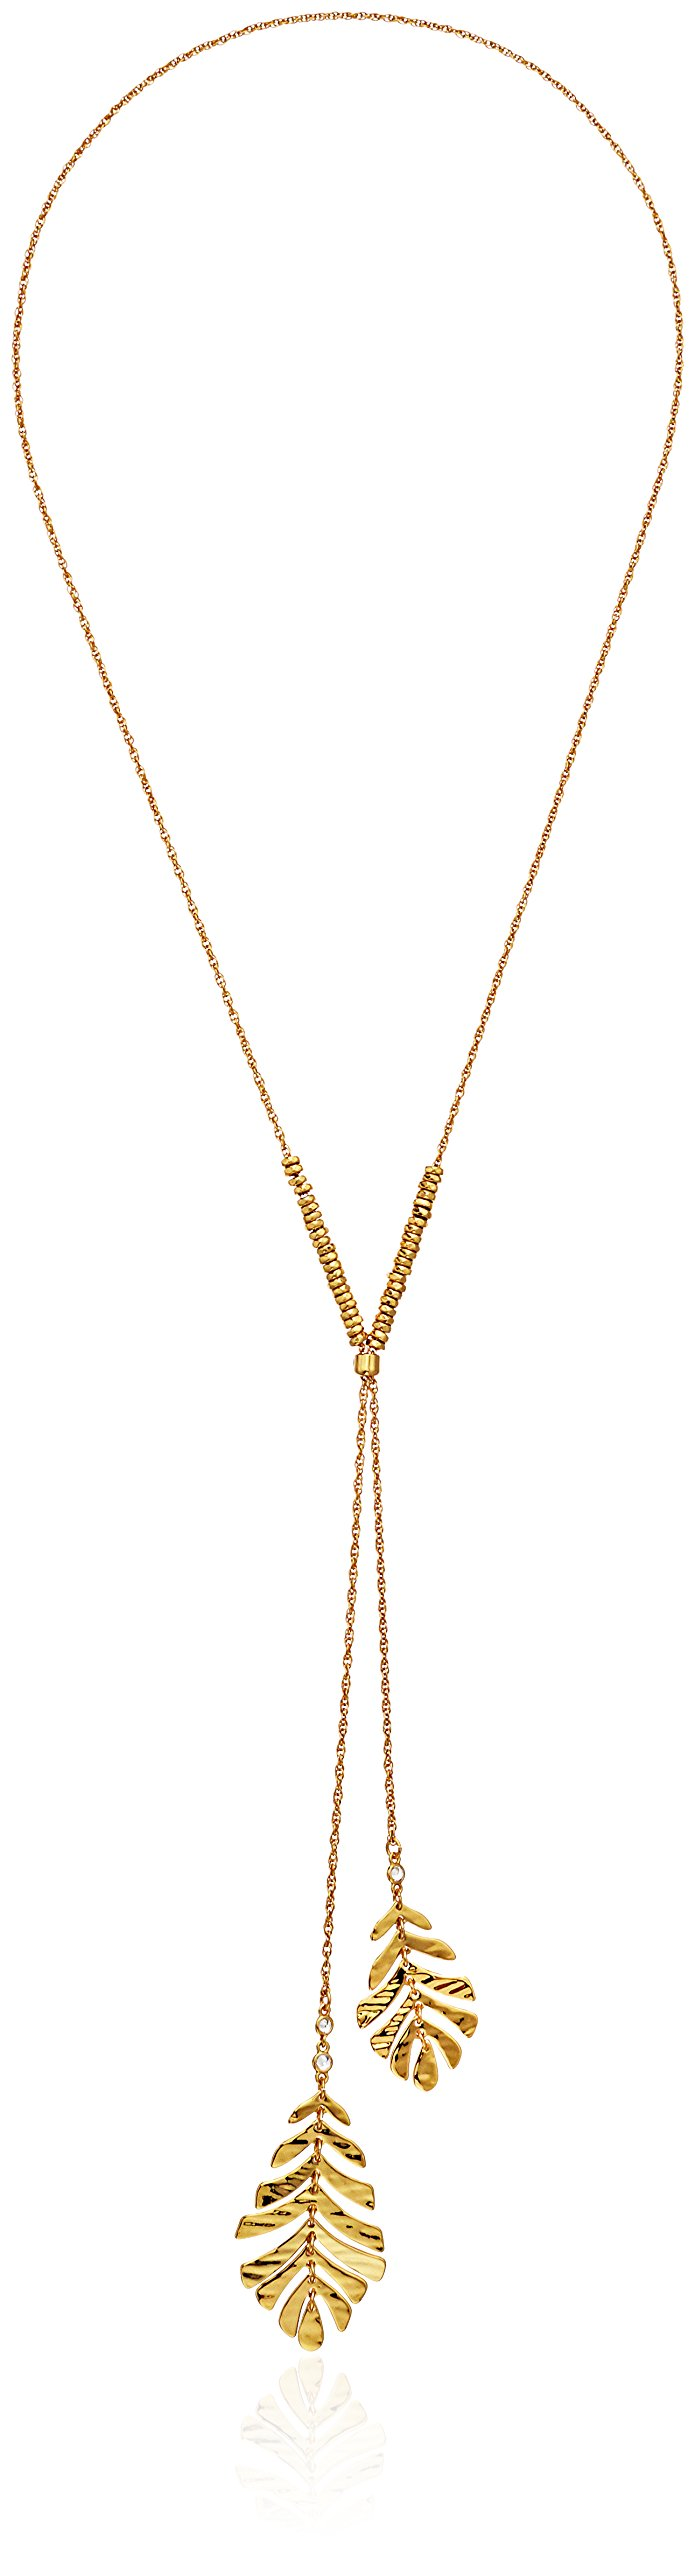 Kate Spade New York Womens Lariat Pendant Necklace, Clear/Gold